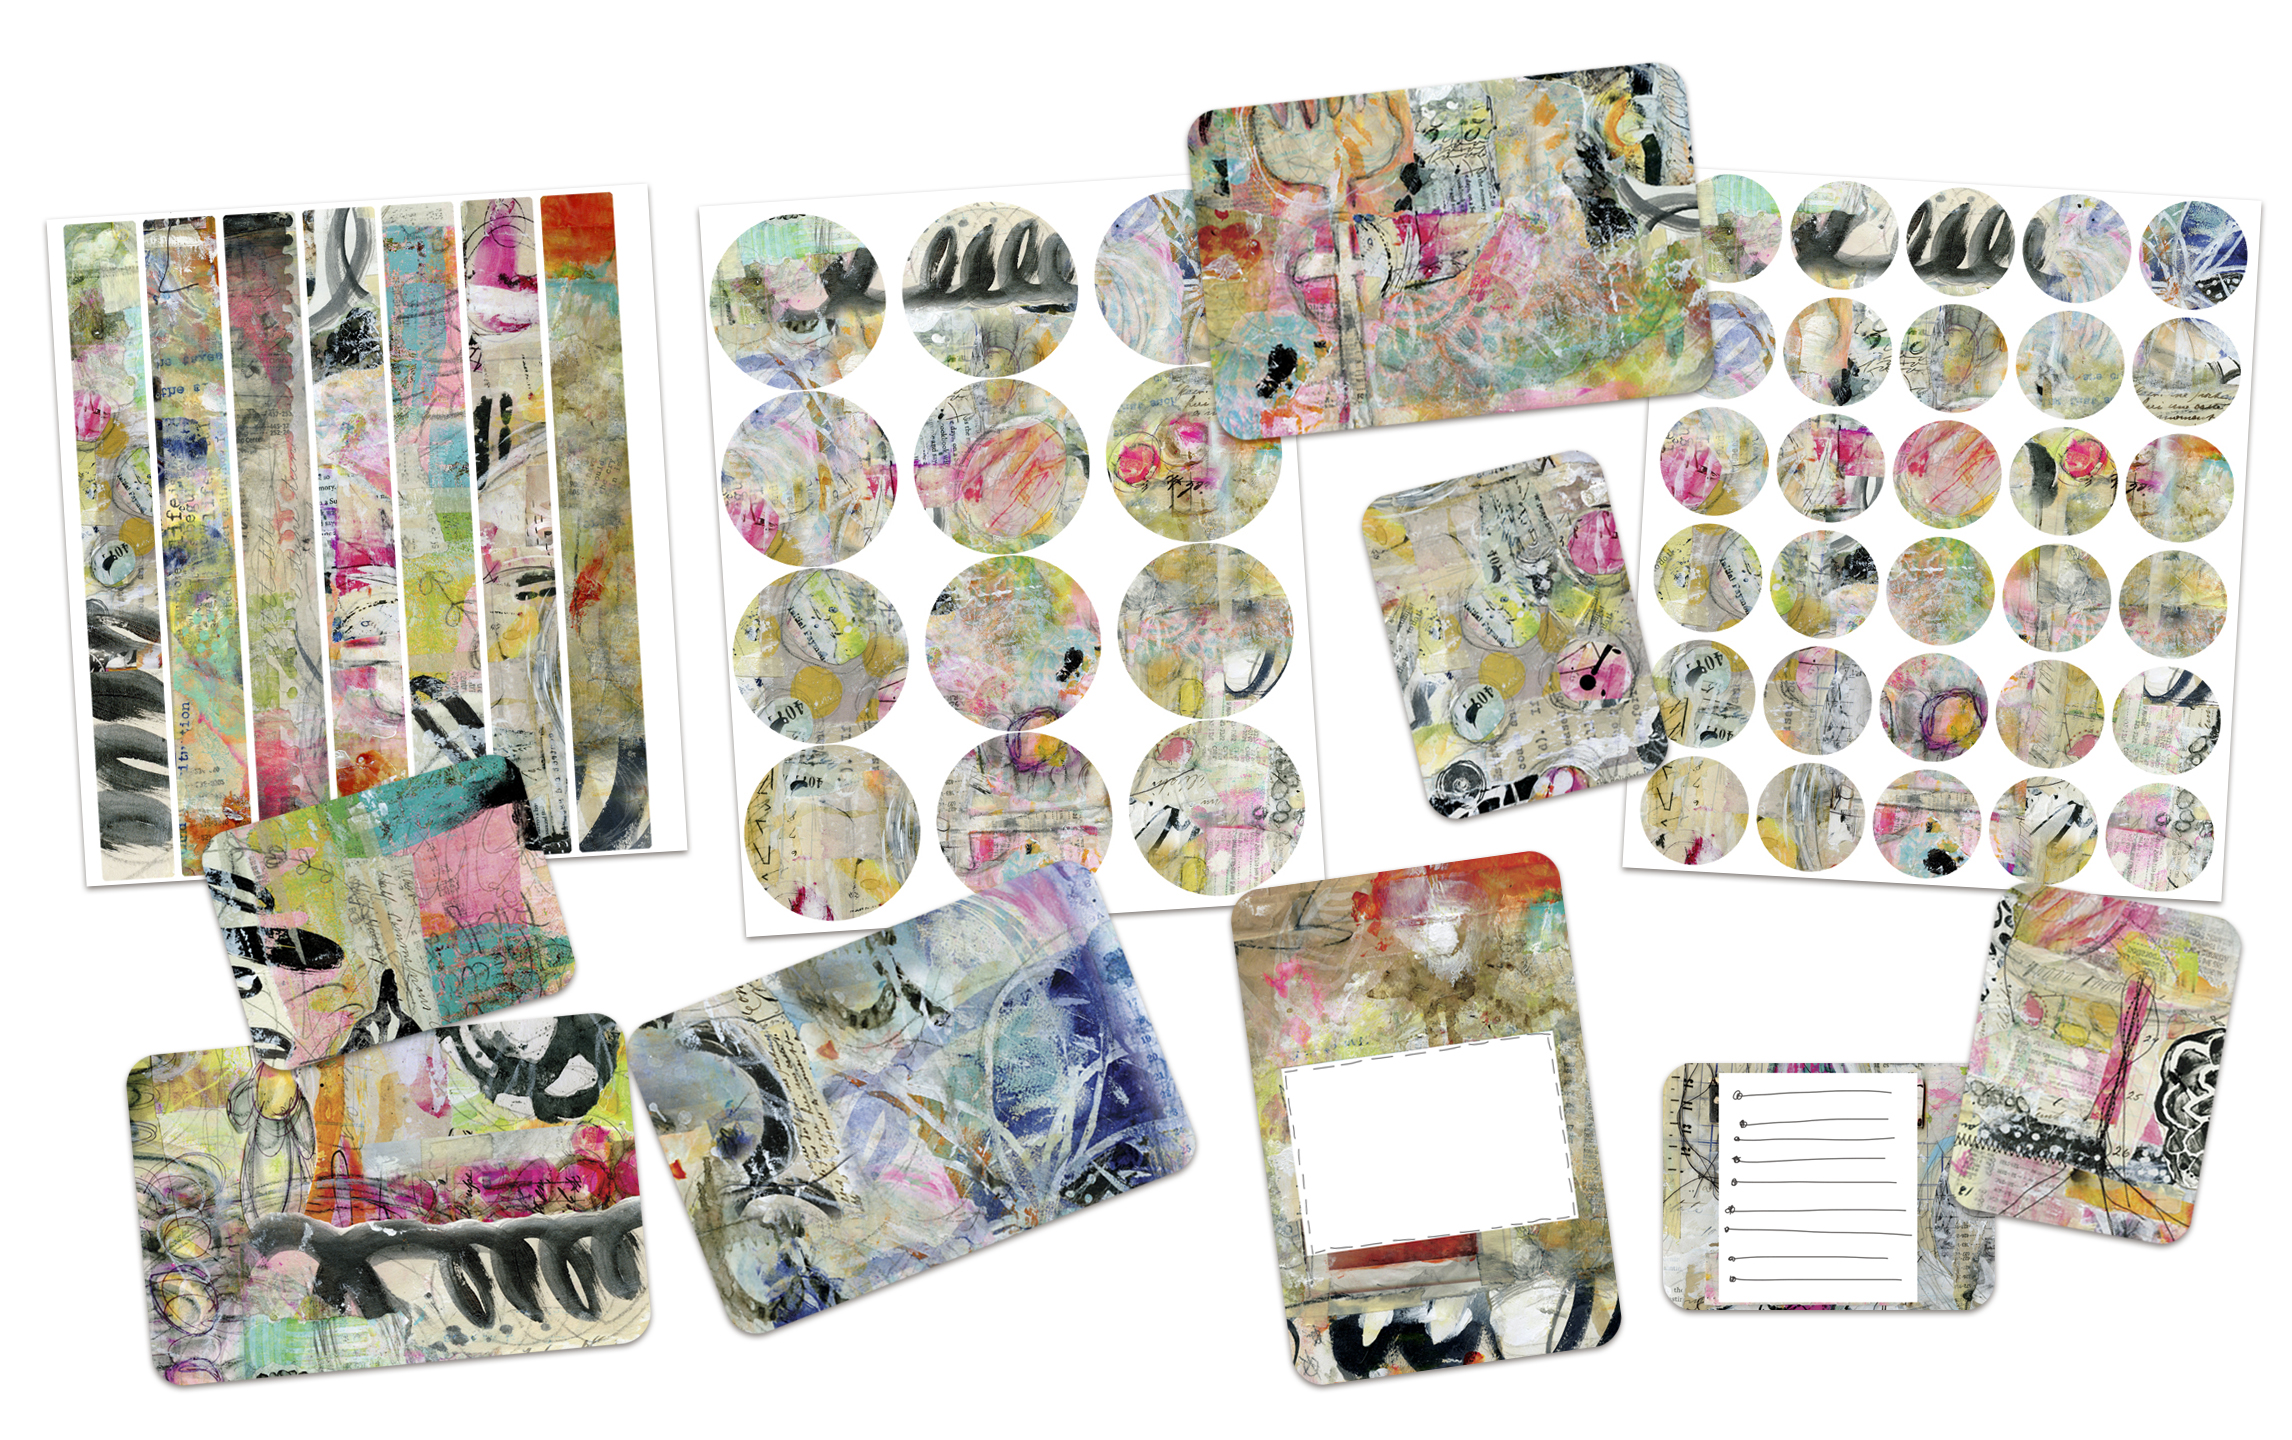 The 100 Days Art Pops™ Collection by Roben-Marie Smith available at https://shoprobenmarie.com/ #artpops #mixedmedia #projectlife #stickers #diy @robenmarie